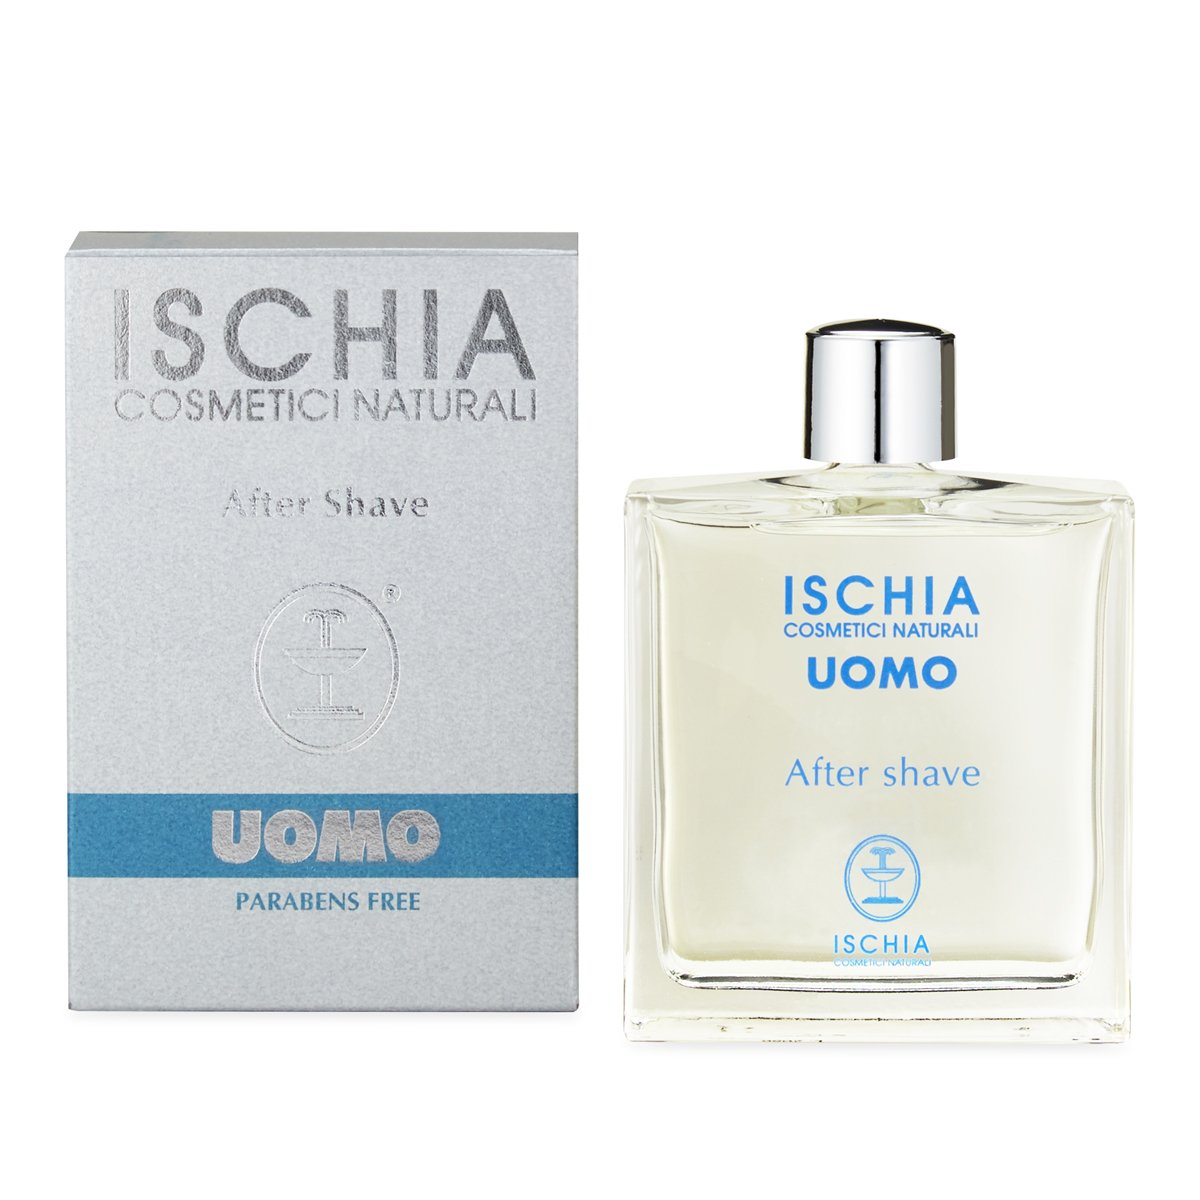 after shave termale Ischia cosmetici naturali